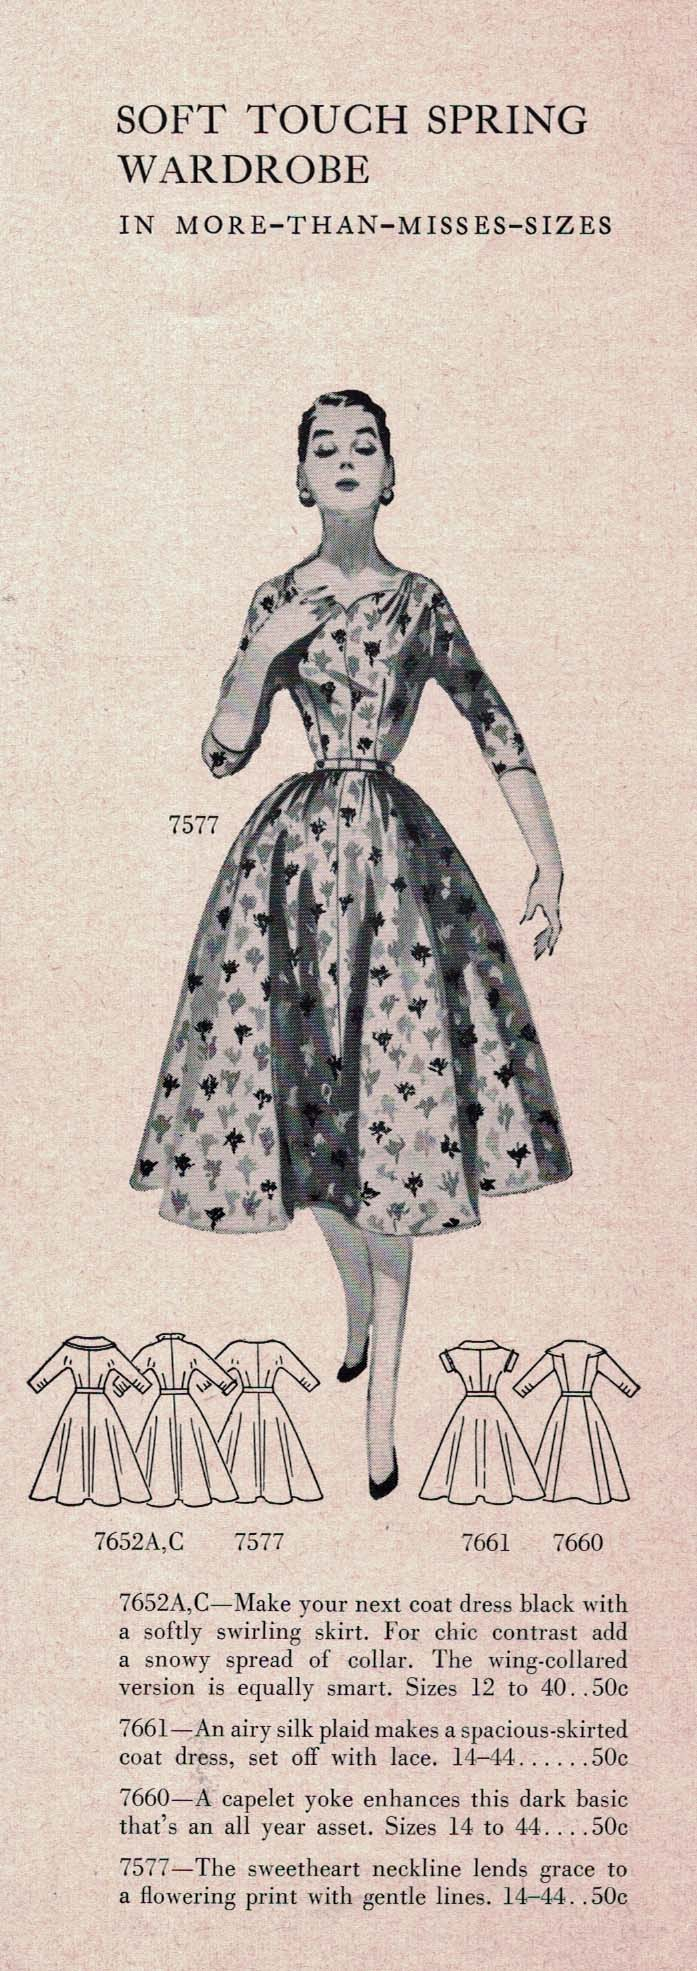 Butterick Pattern Book, Spring 1956. Click to enlarge